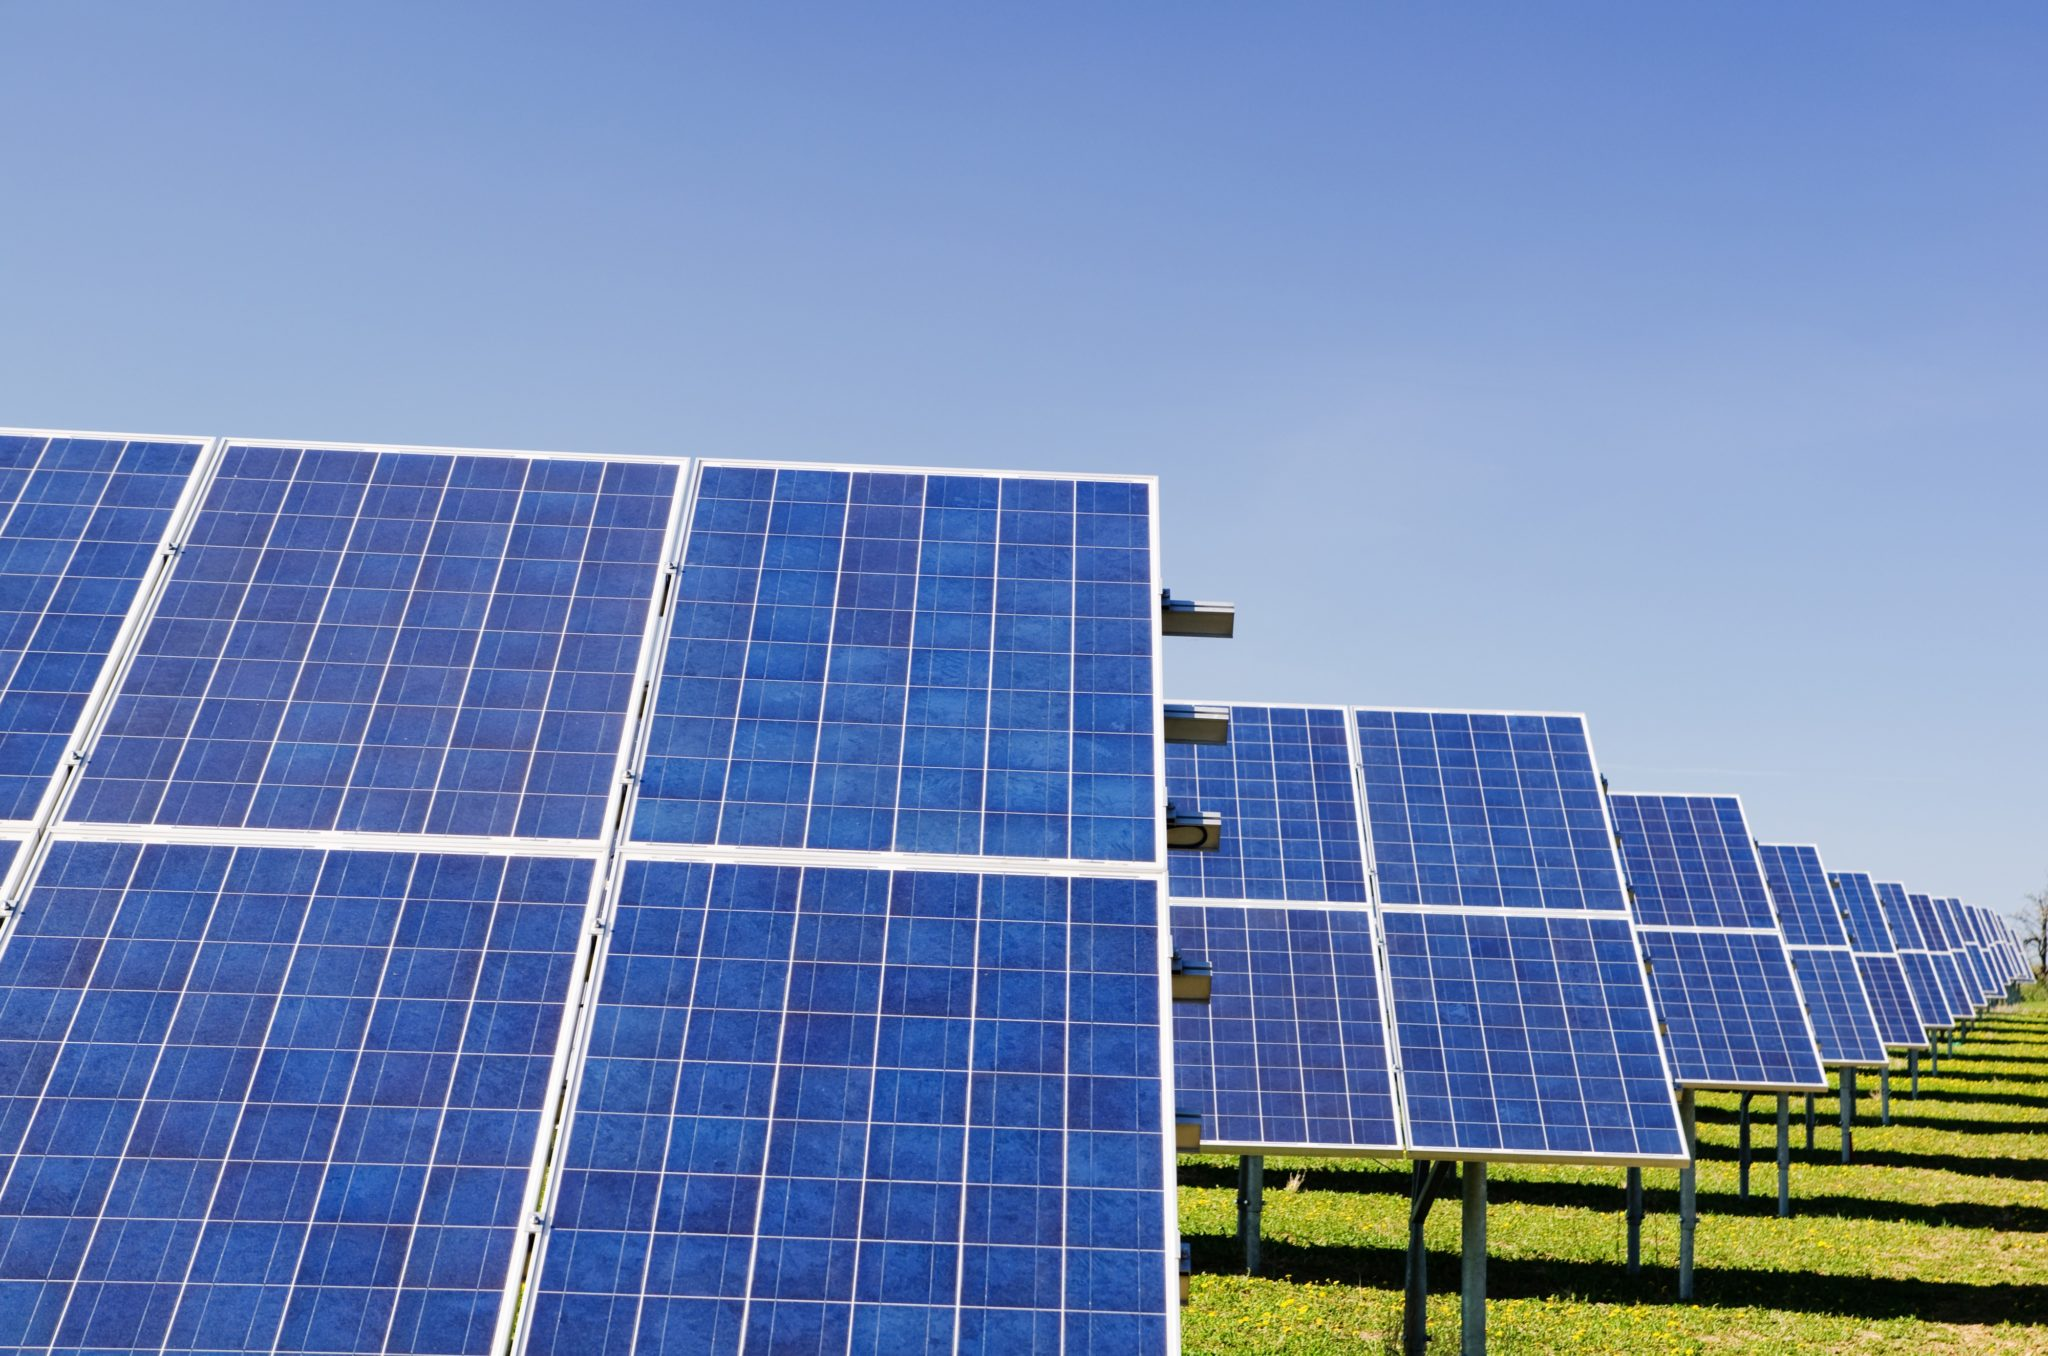 11 SMART questions answered- the facts on Massachusetts' new solar program